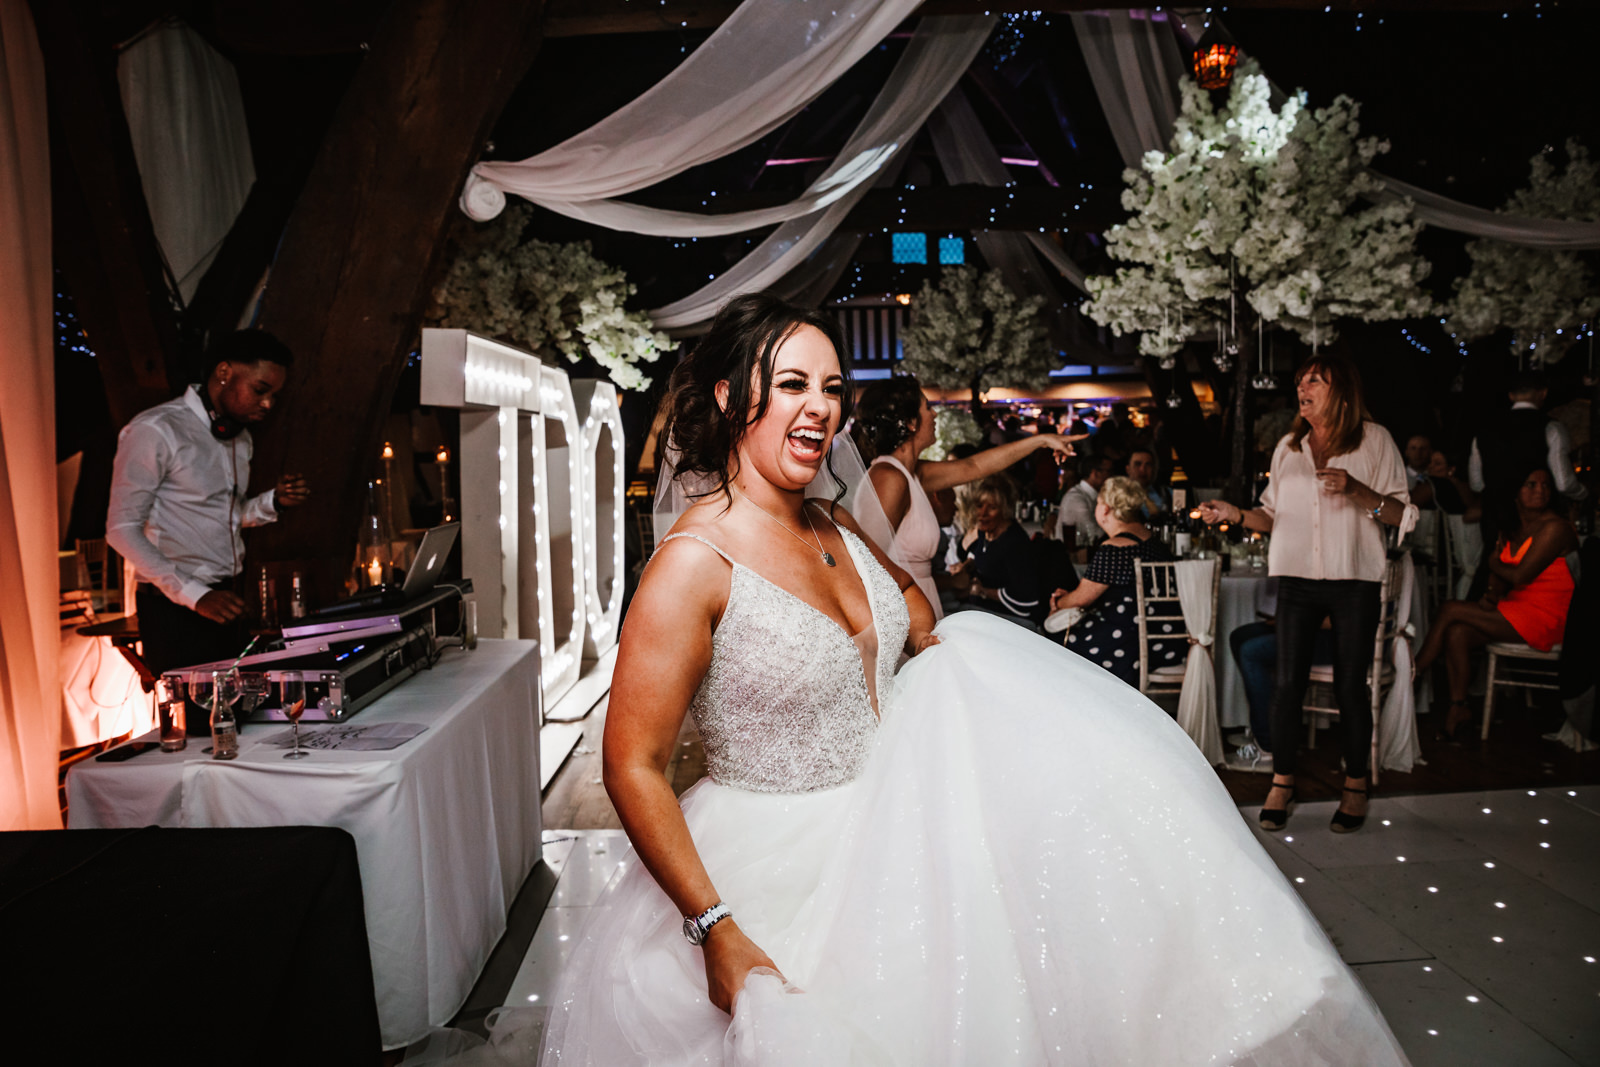 Bride dancing at rivington hall barn